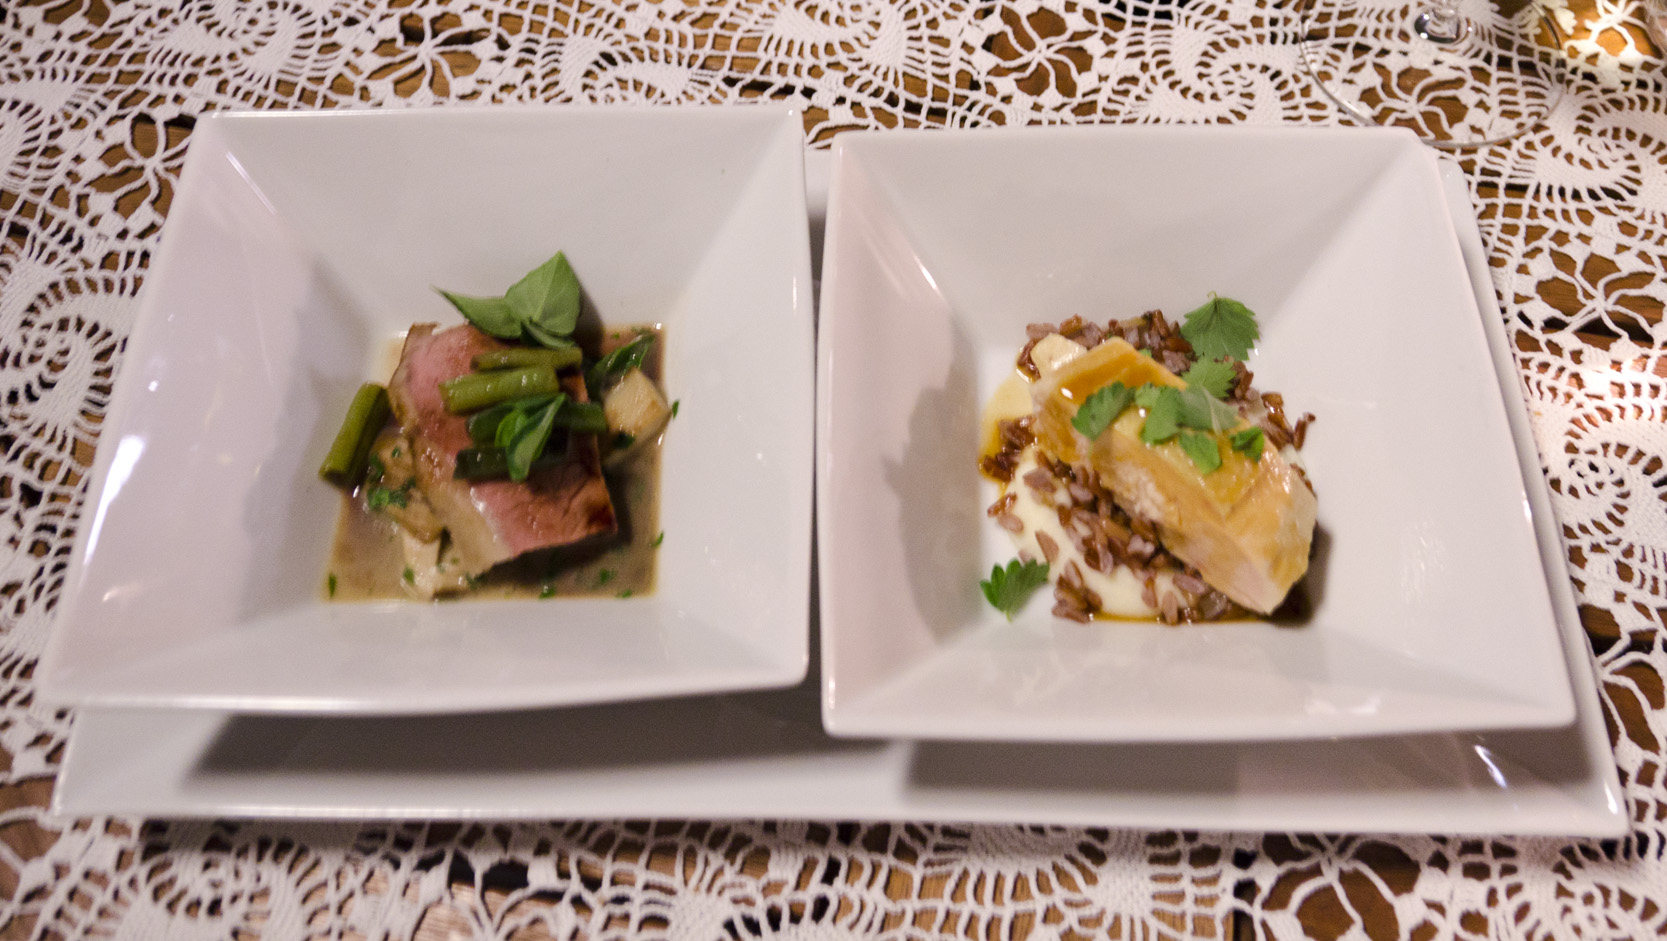 Boiled veal (tafelspitz), roasted with lovage, porcini and cowpea (l) - Corn fed chicken with camargue rice, celery puree and pimpinella (r)